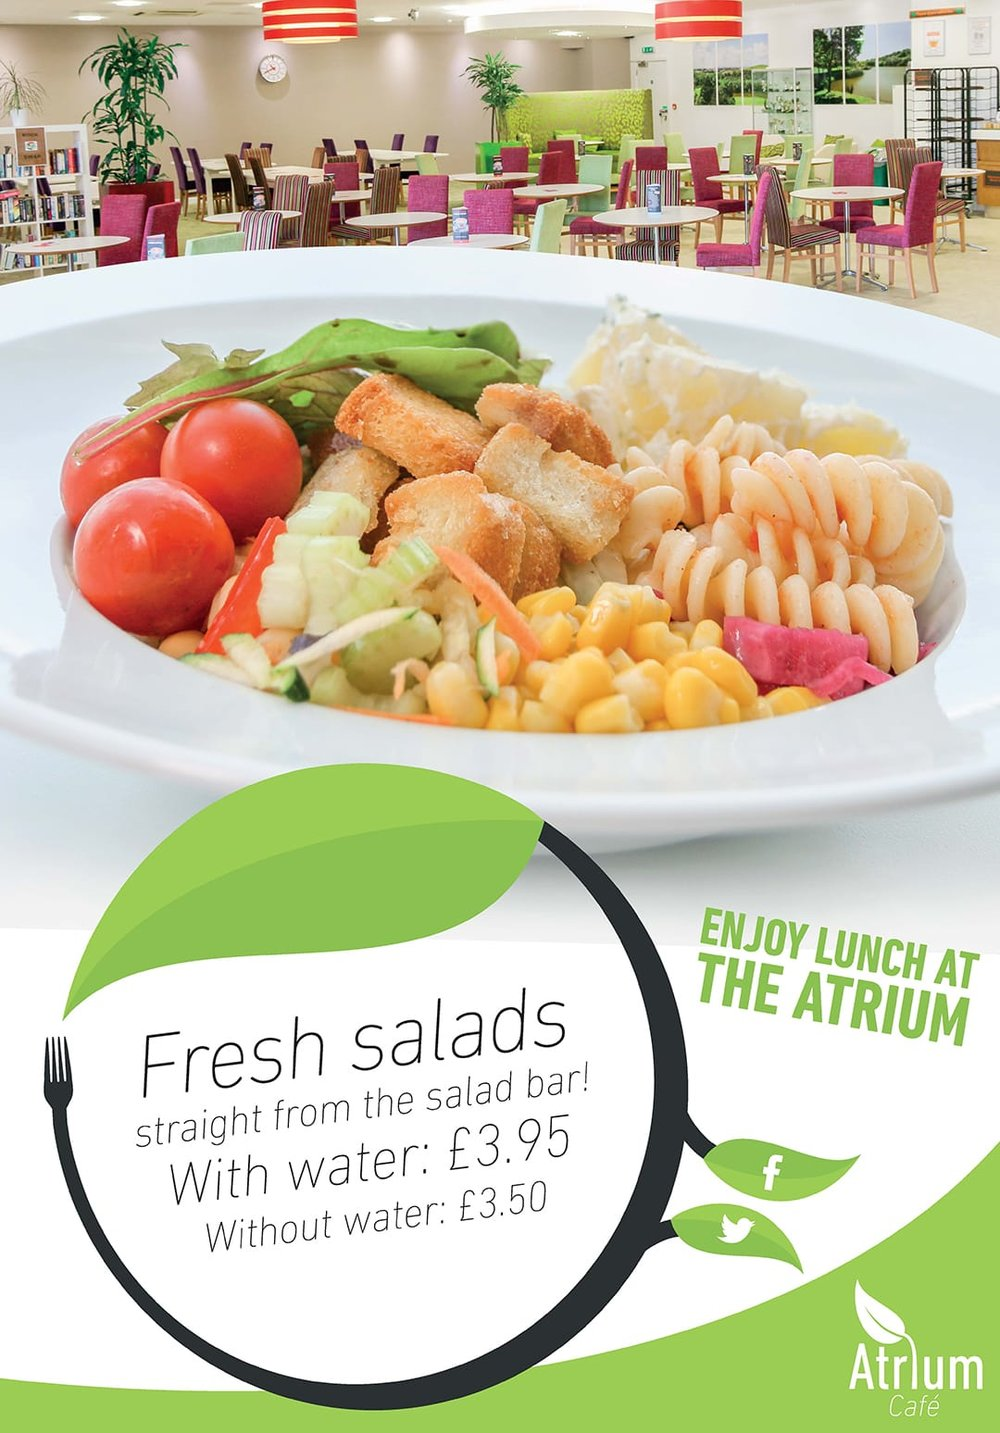 Salad Poster for The Atrium.jpg